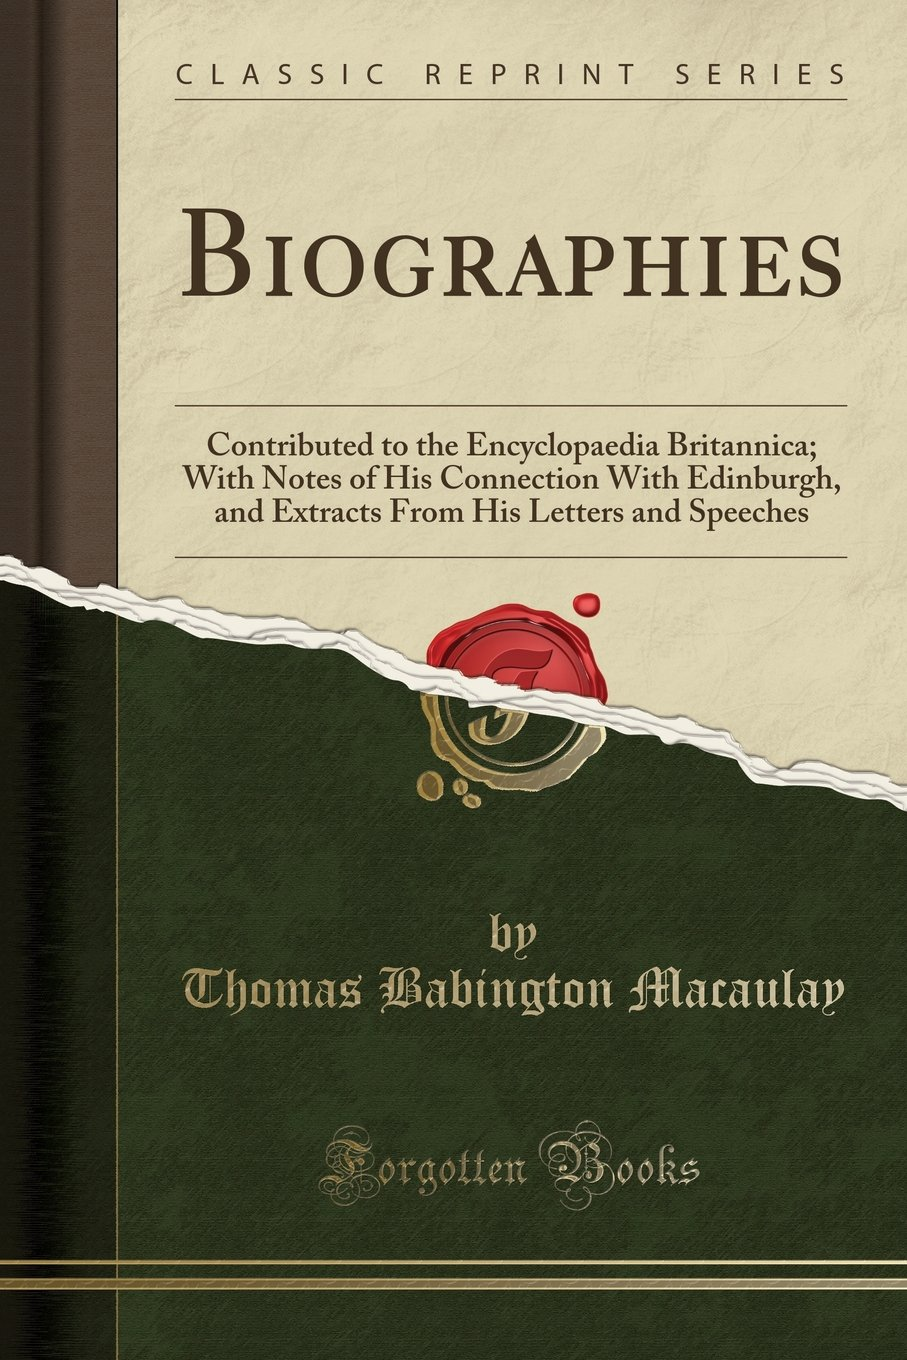 Biographies: Contributed to the Encyclopaedia Britannica; With Notes of His Connection With Edinburgh, and Extracts From His Letters and Speeches (Classic Reprint) PDF